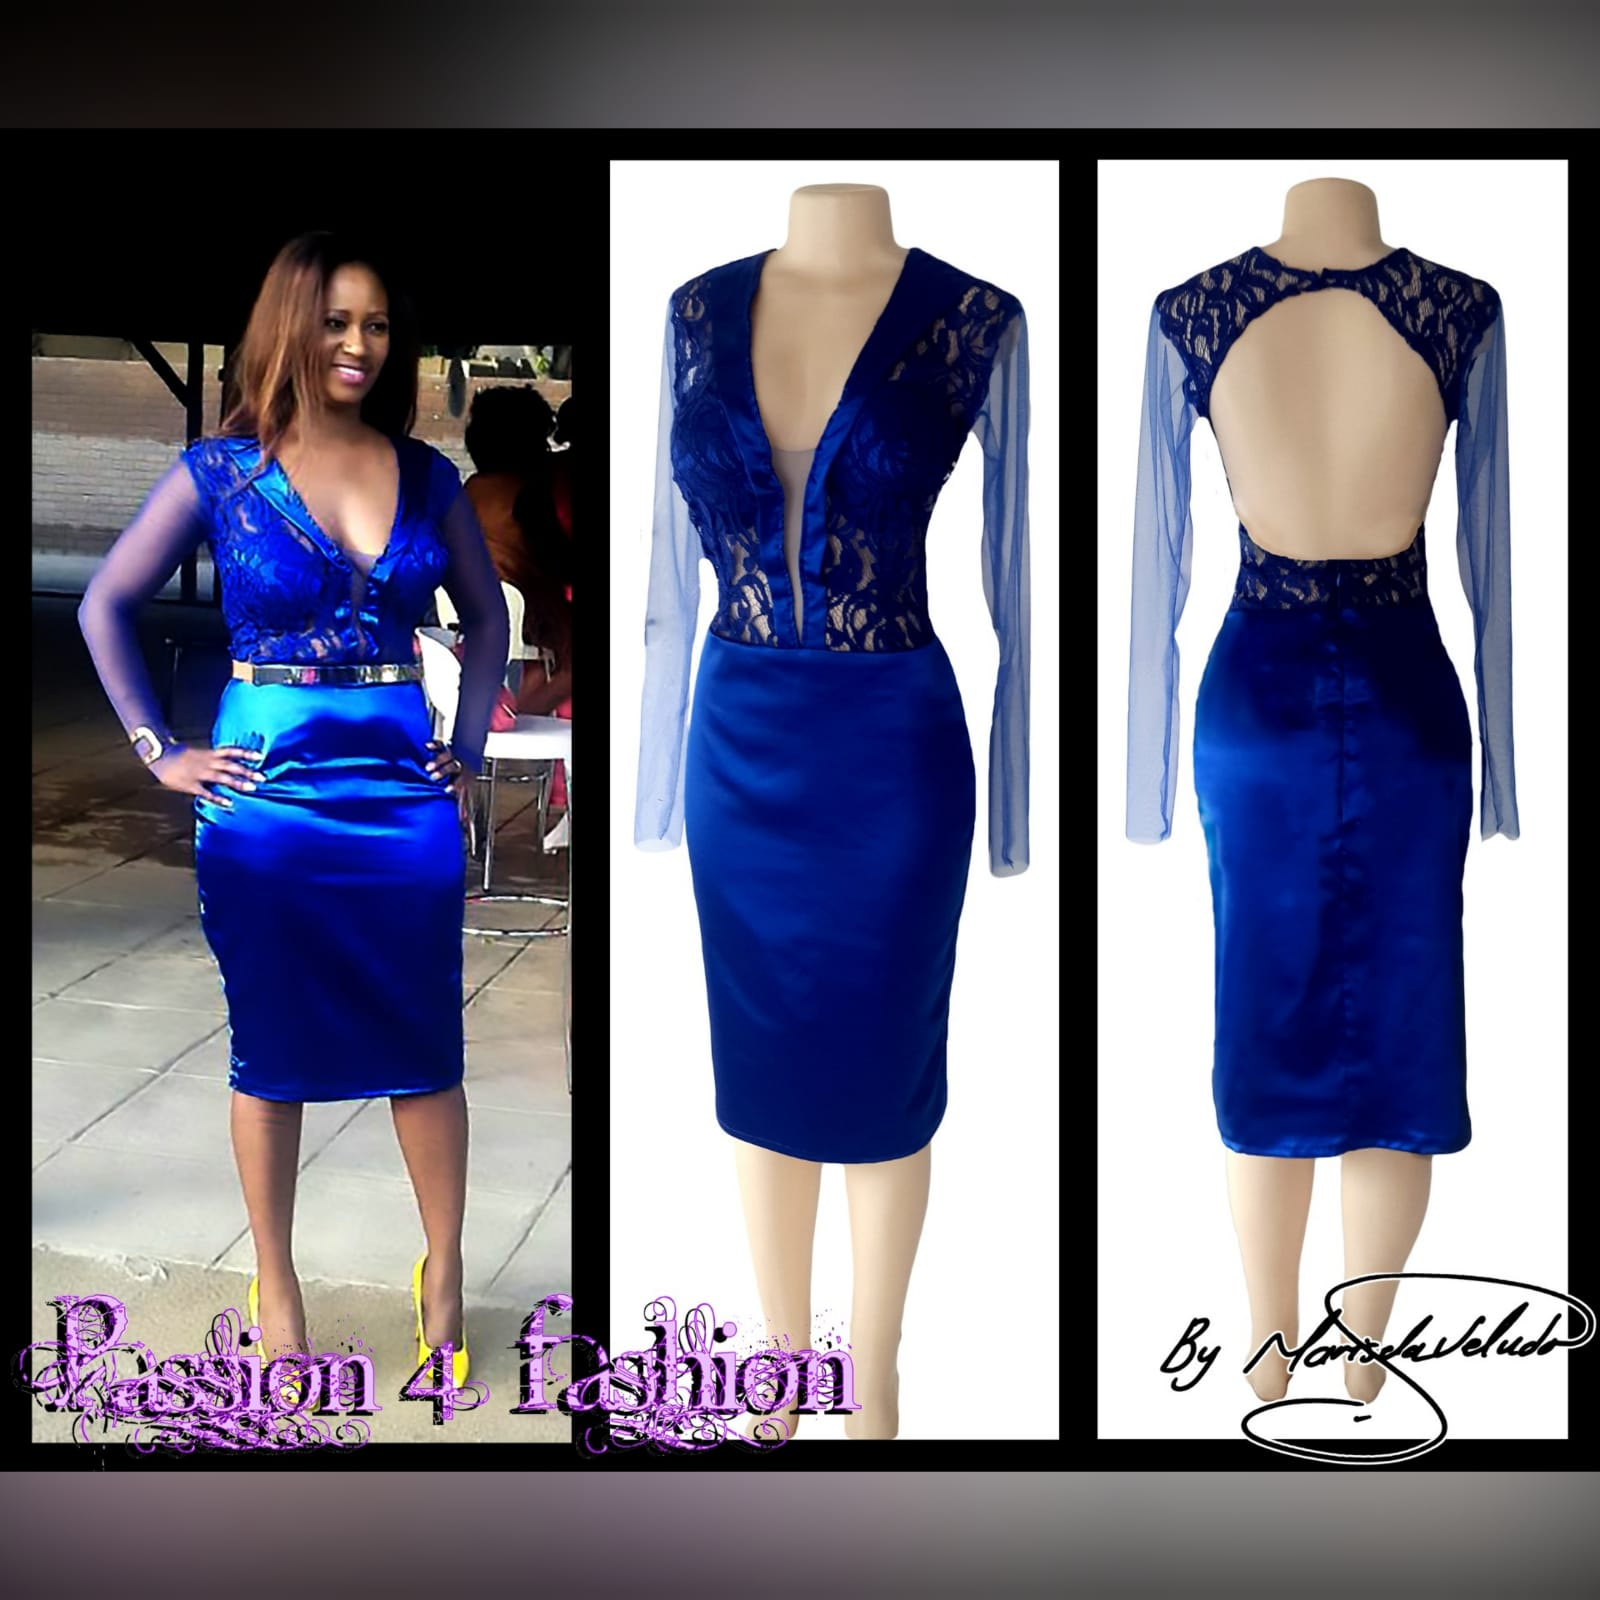 Royal blue short fitted satin party evening dress 3 royal blue short fitted satin party evening dress, with a lace bodice with satin collar detail and an open back, with tulle long sleeves